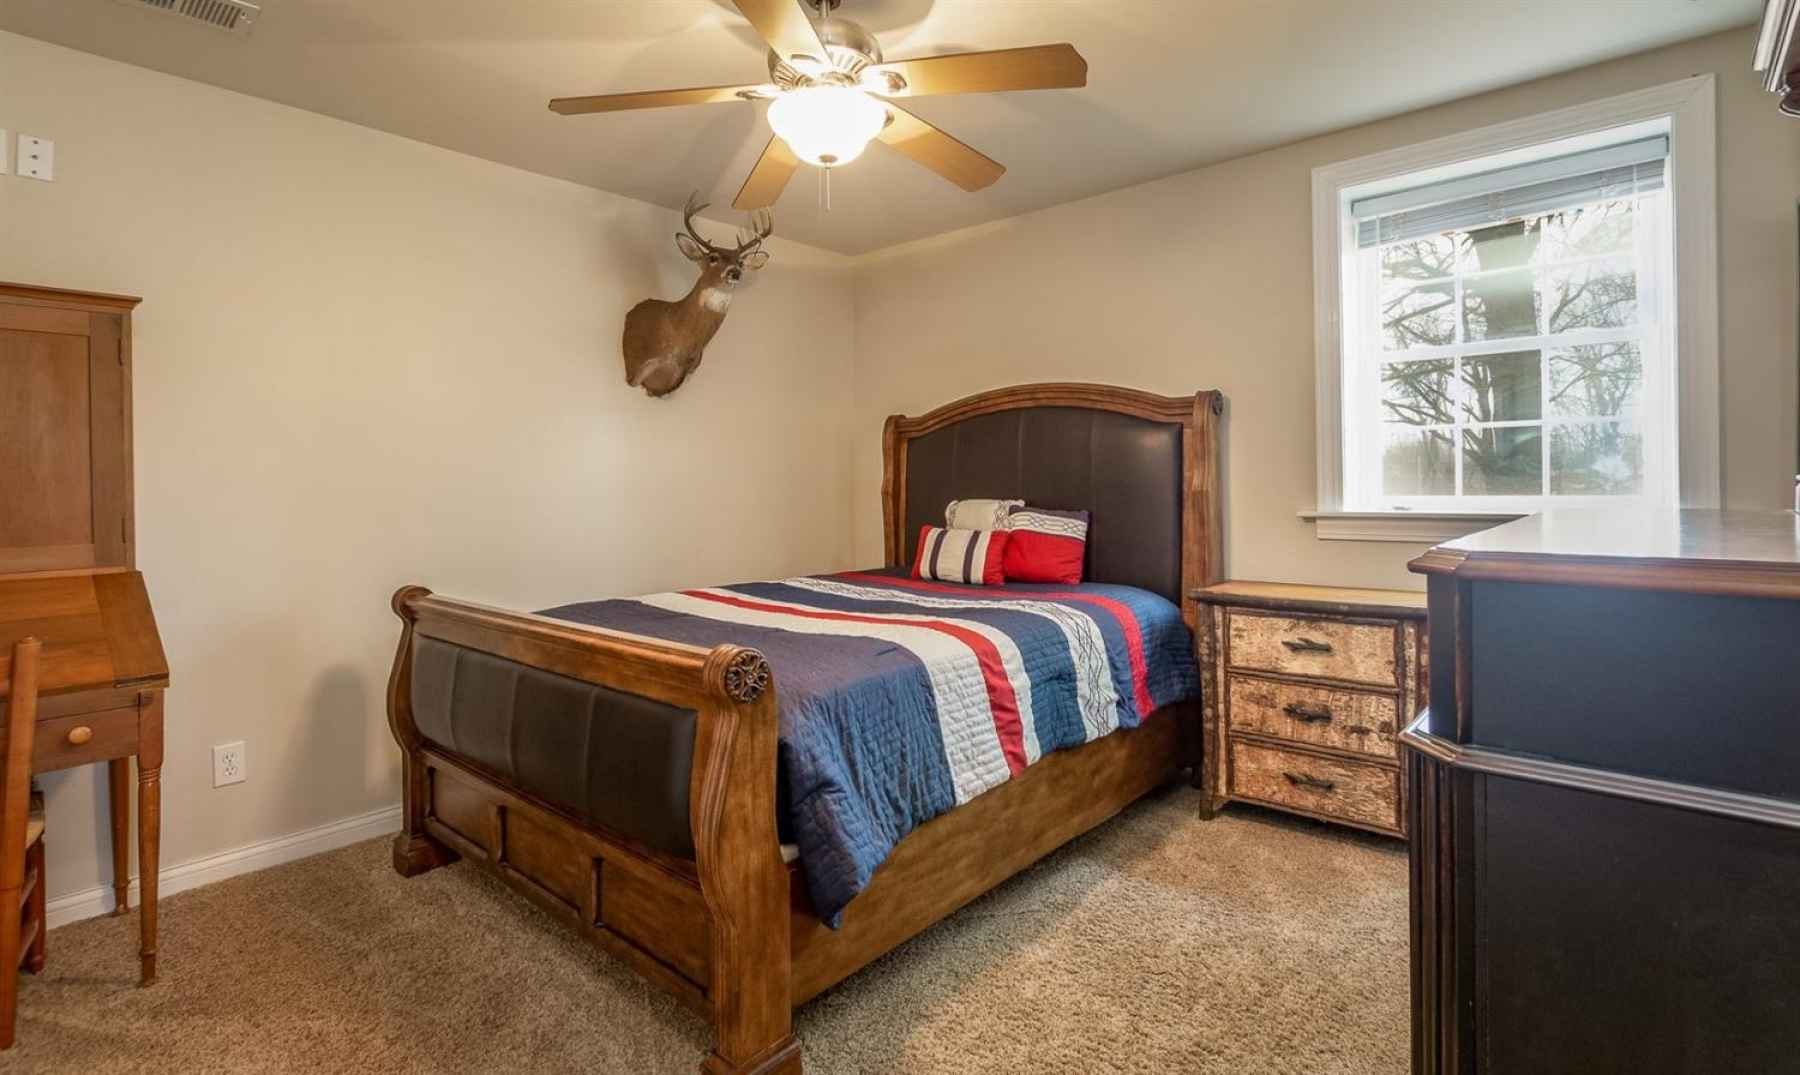 4th guest bedroom is located in the basement area.  Has ample closet space and a nicely sized window